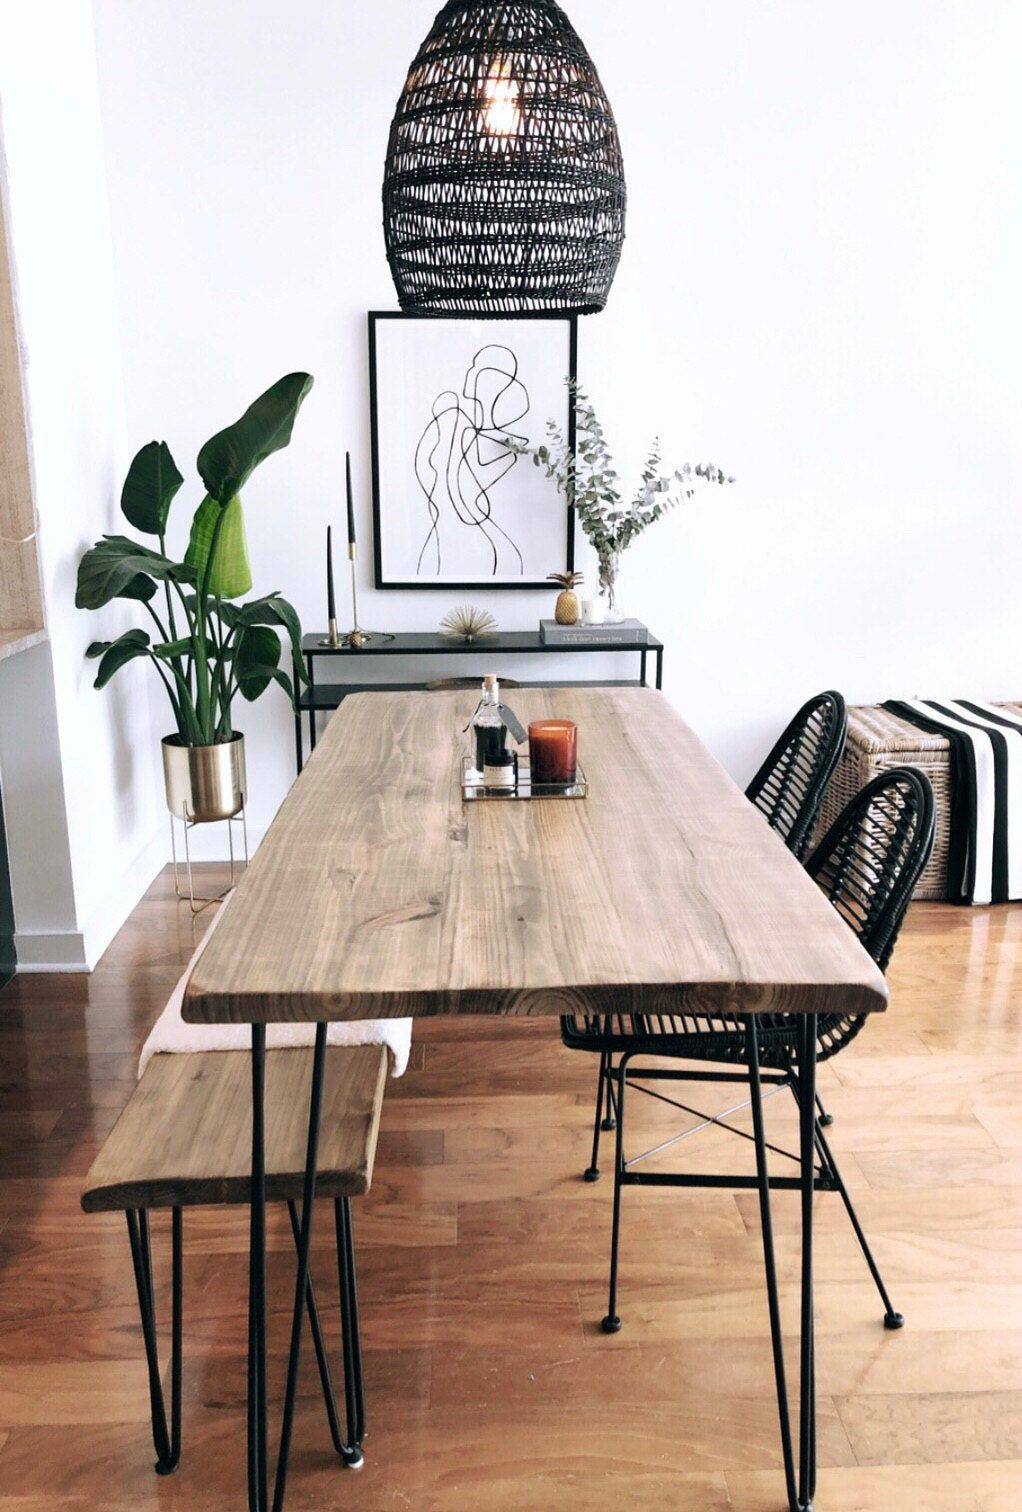 Reclaimed Wood & Metal Dining Table - Boho Dining Table